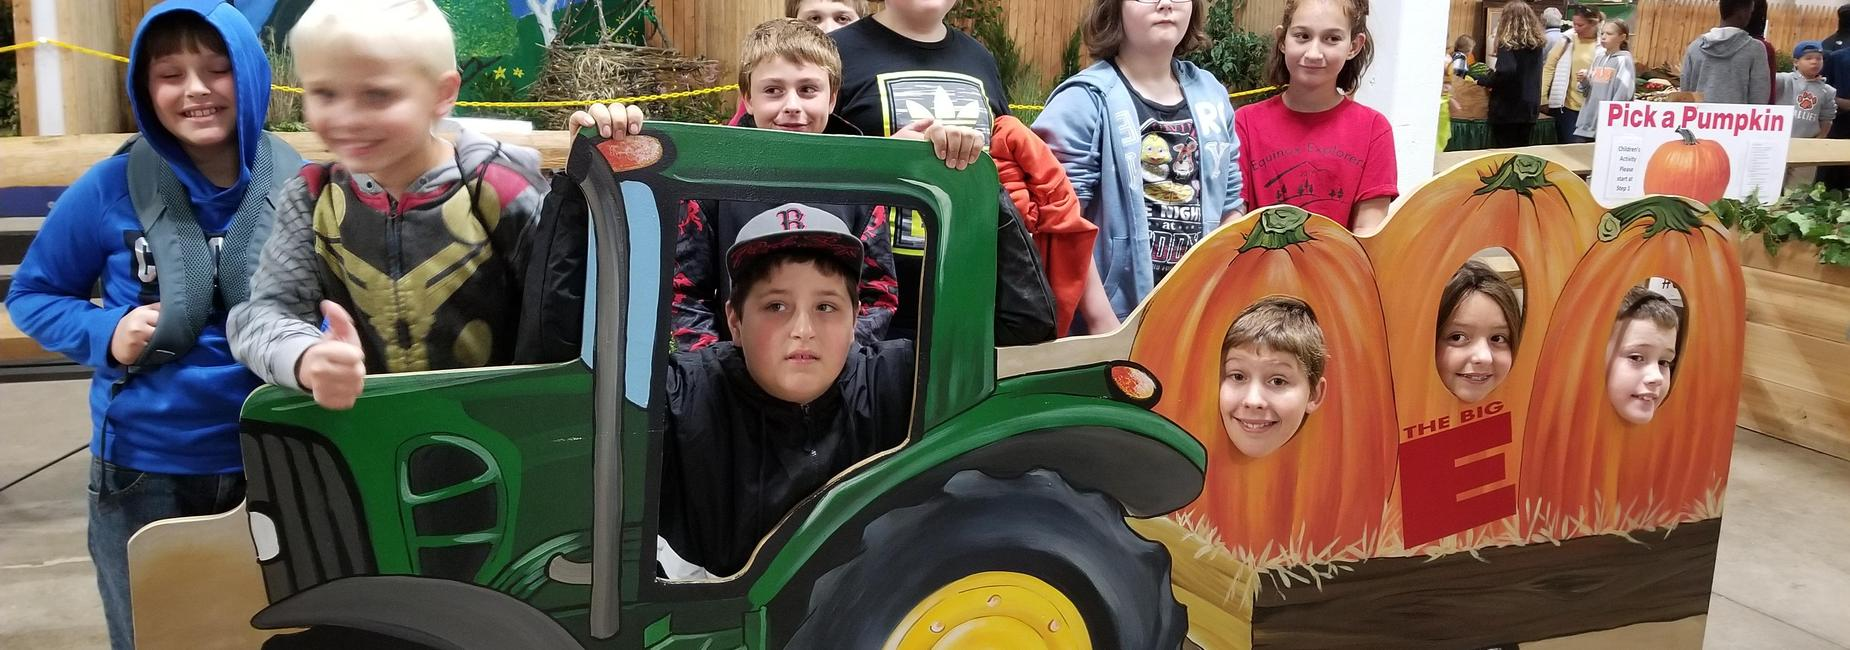 Students at Big E Fair